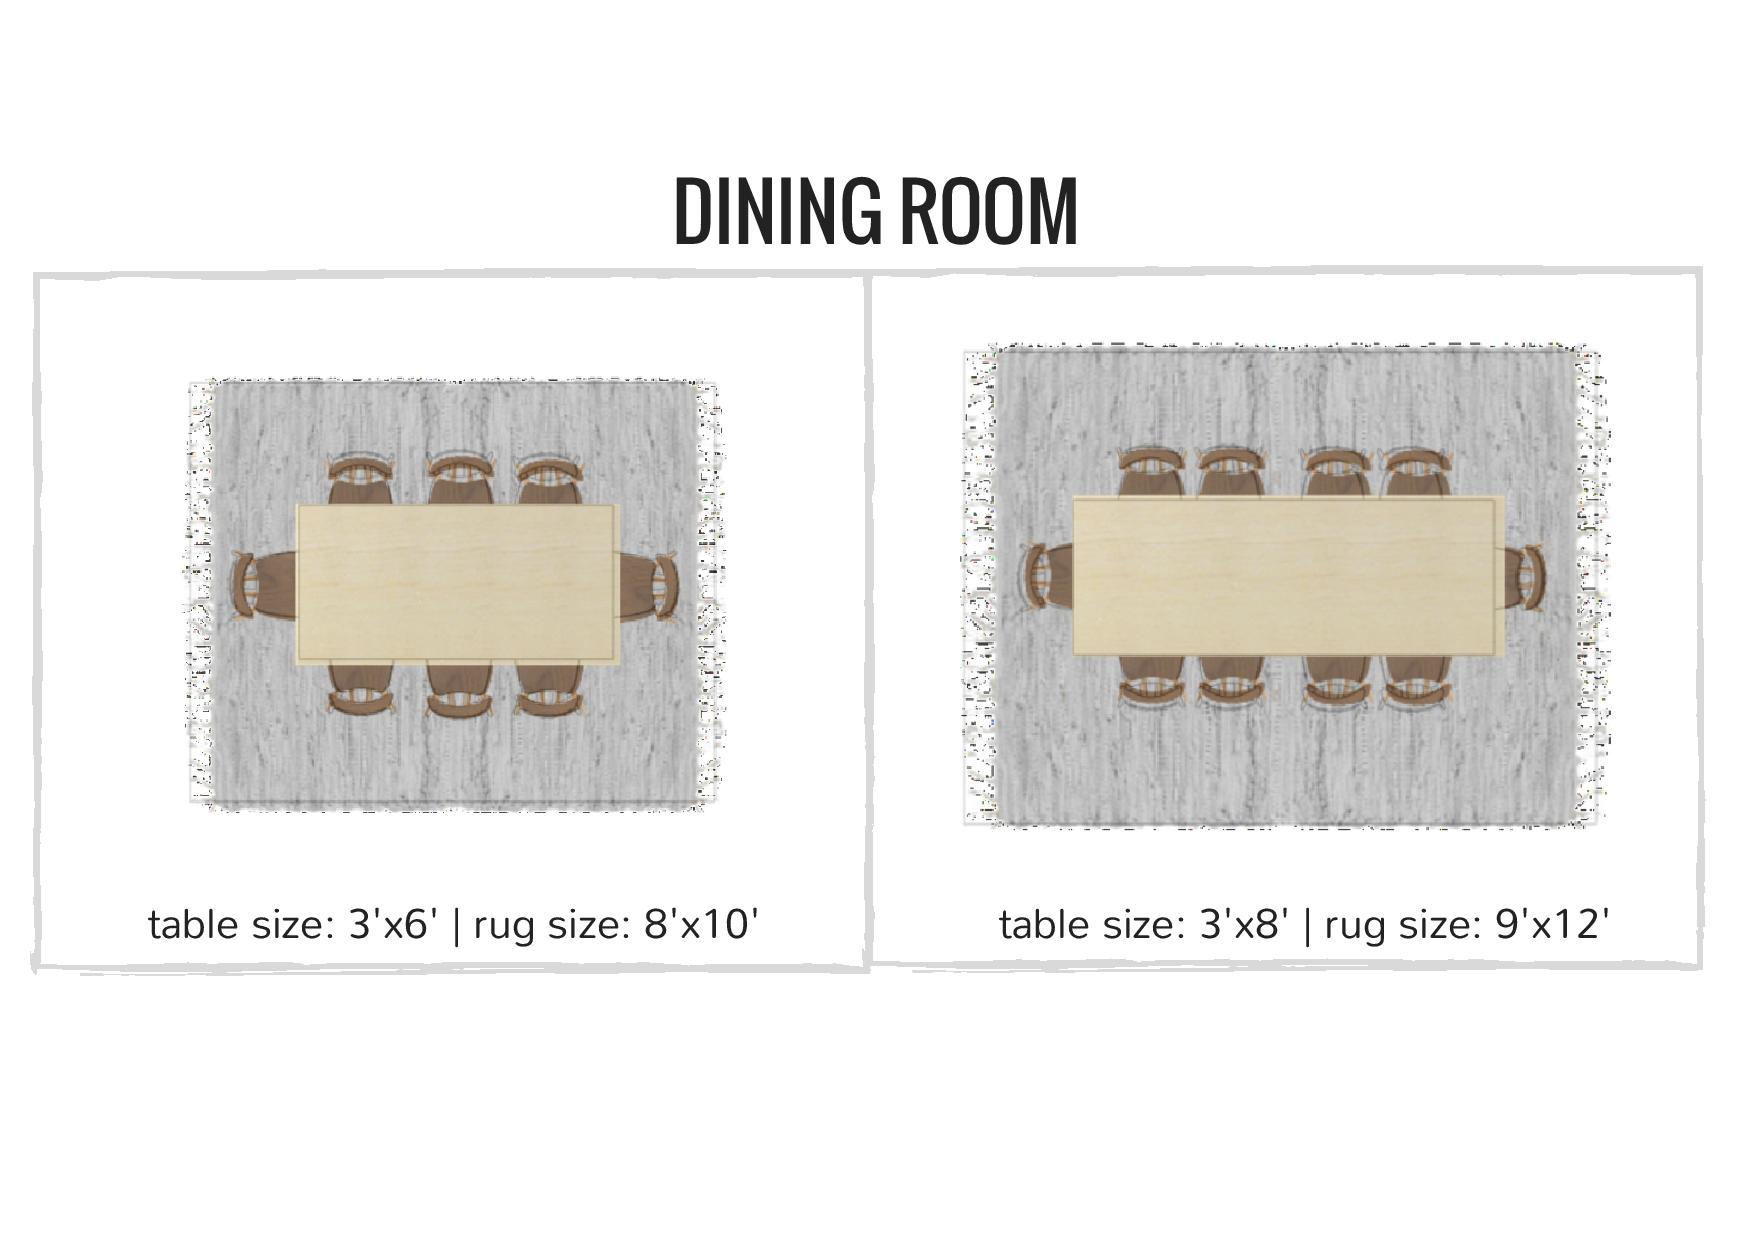 rug sizing and placement guide - what size rug do you need for your dining room